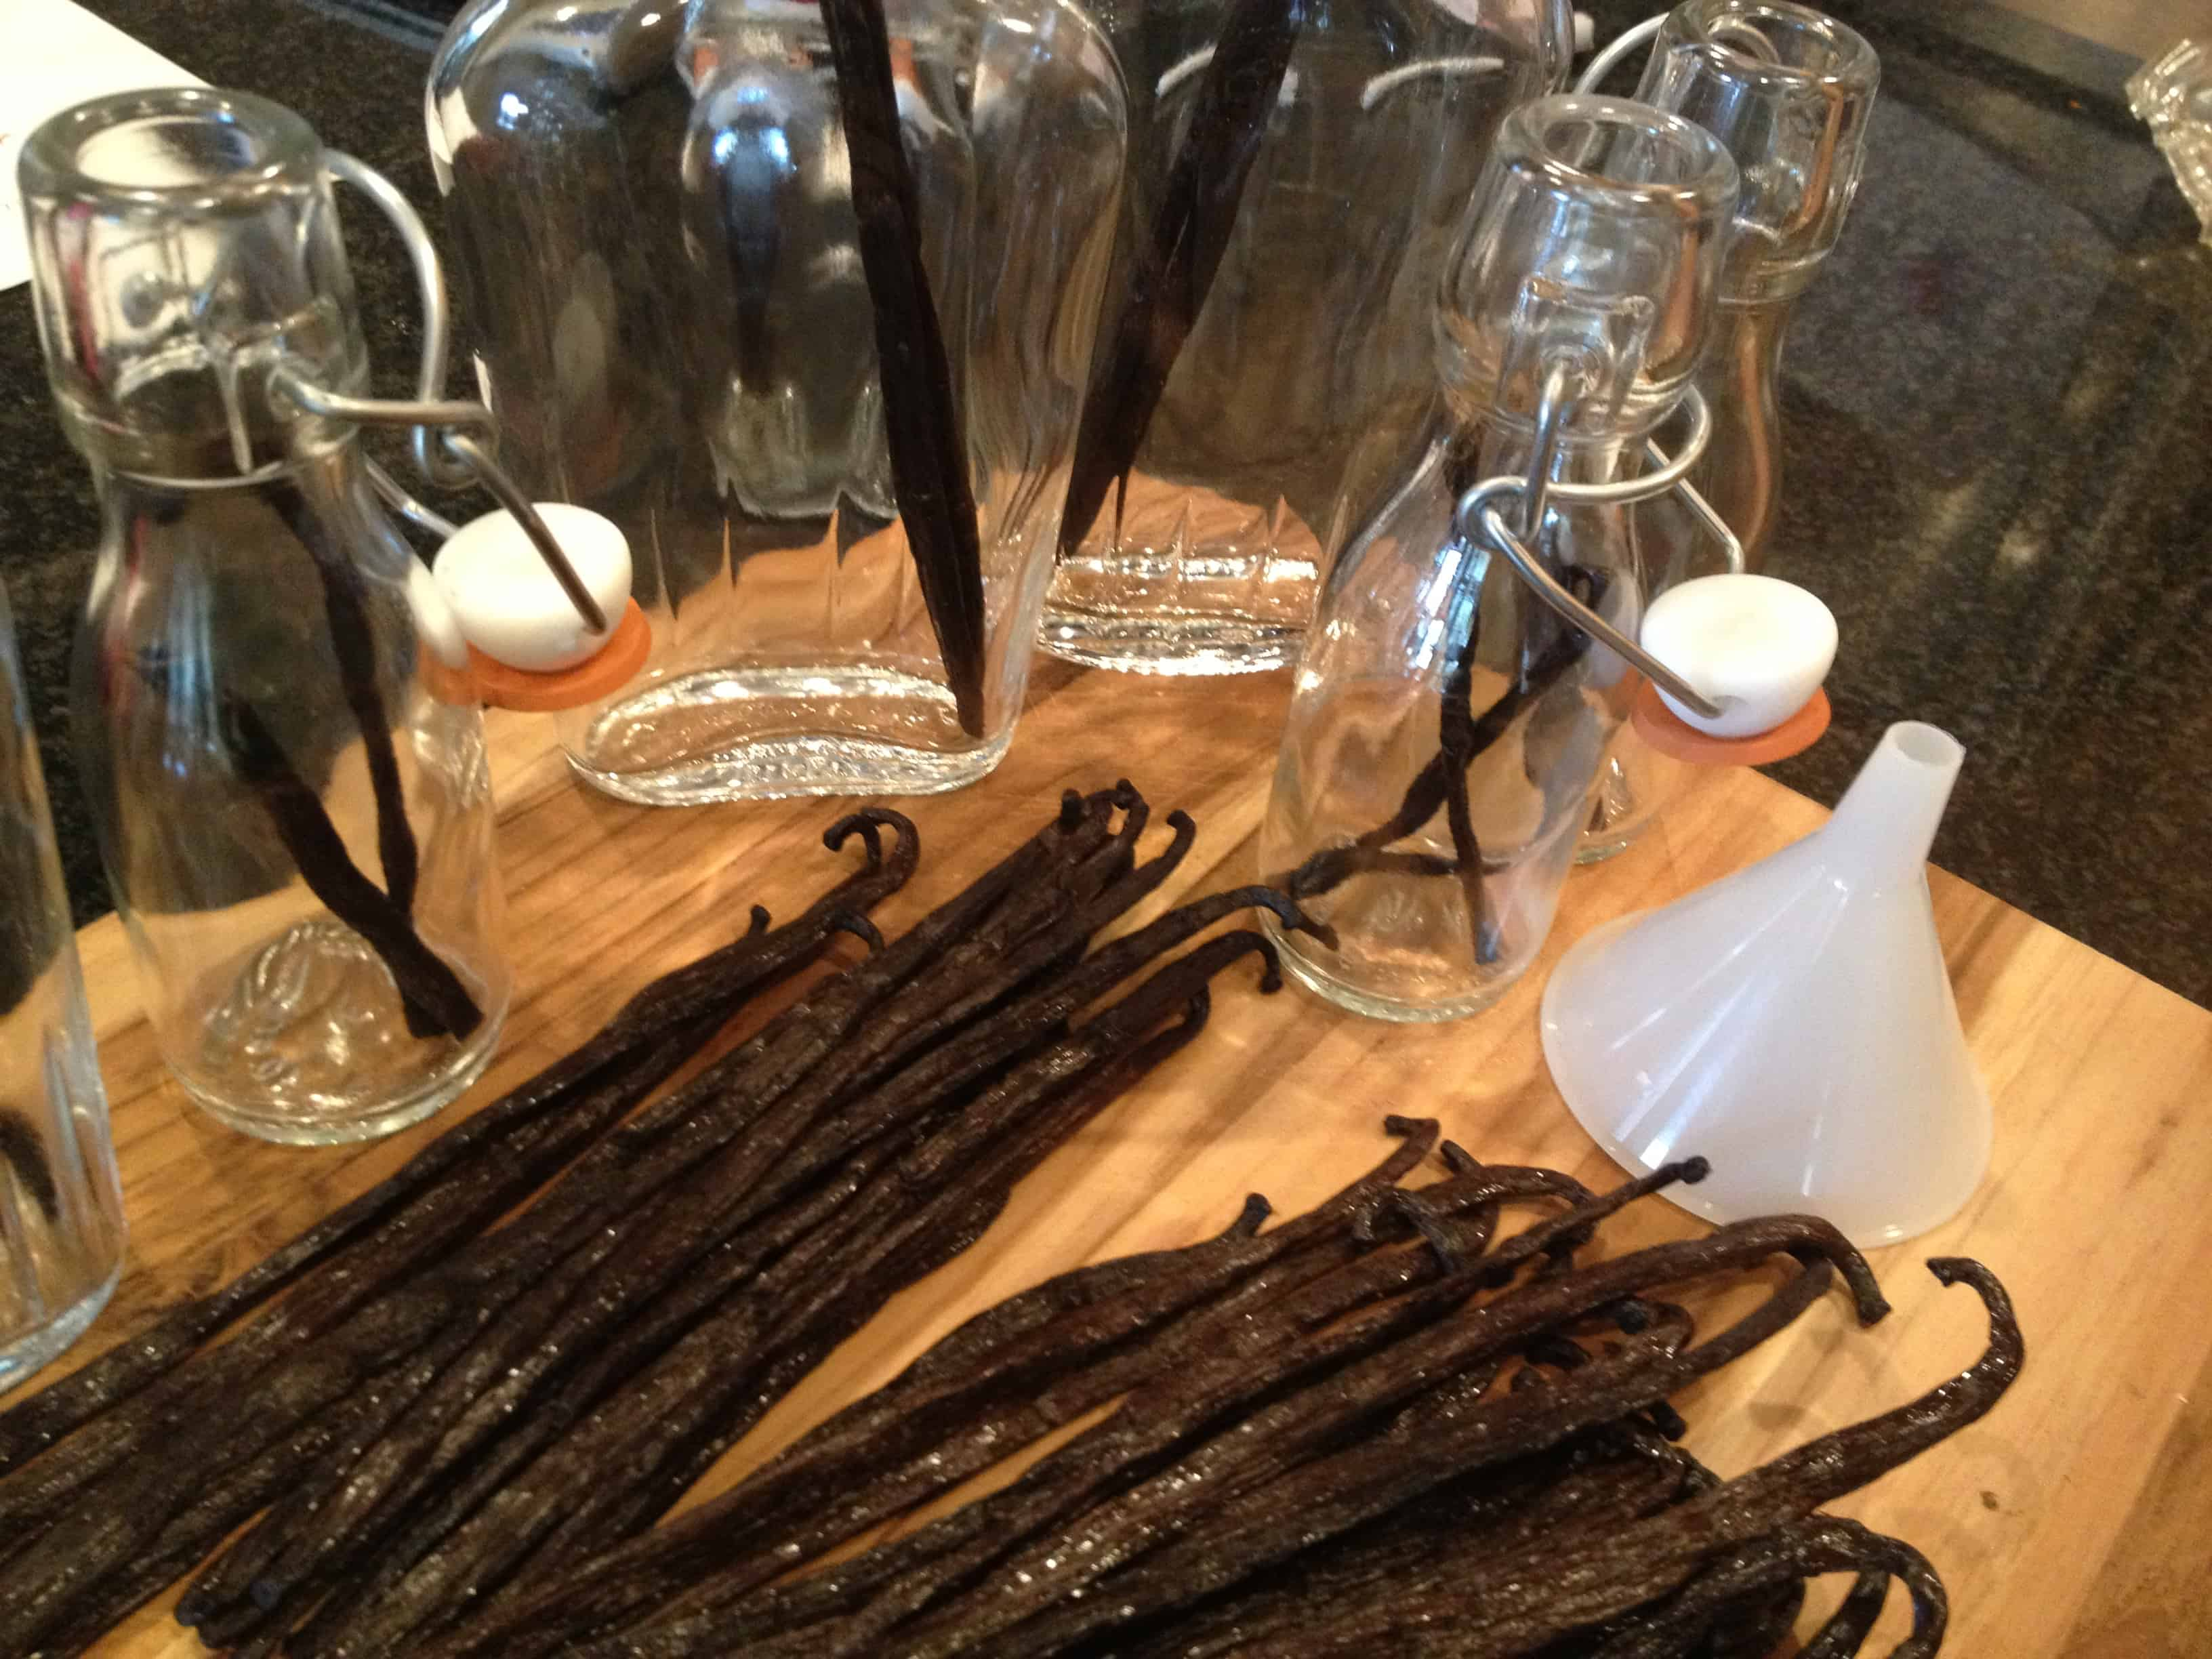 Vanilla Beans and Bottles